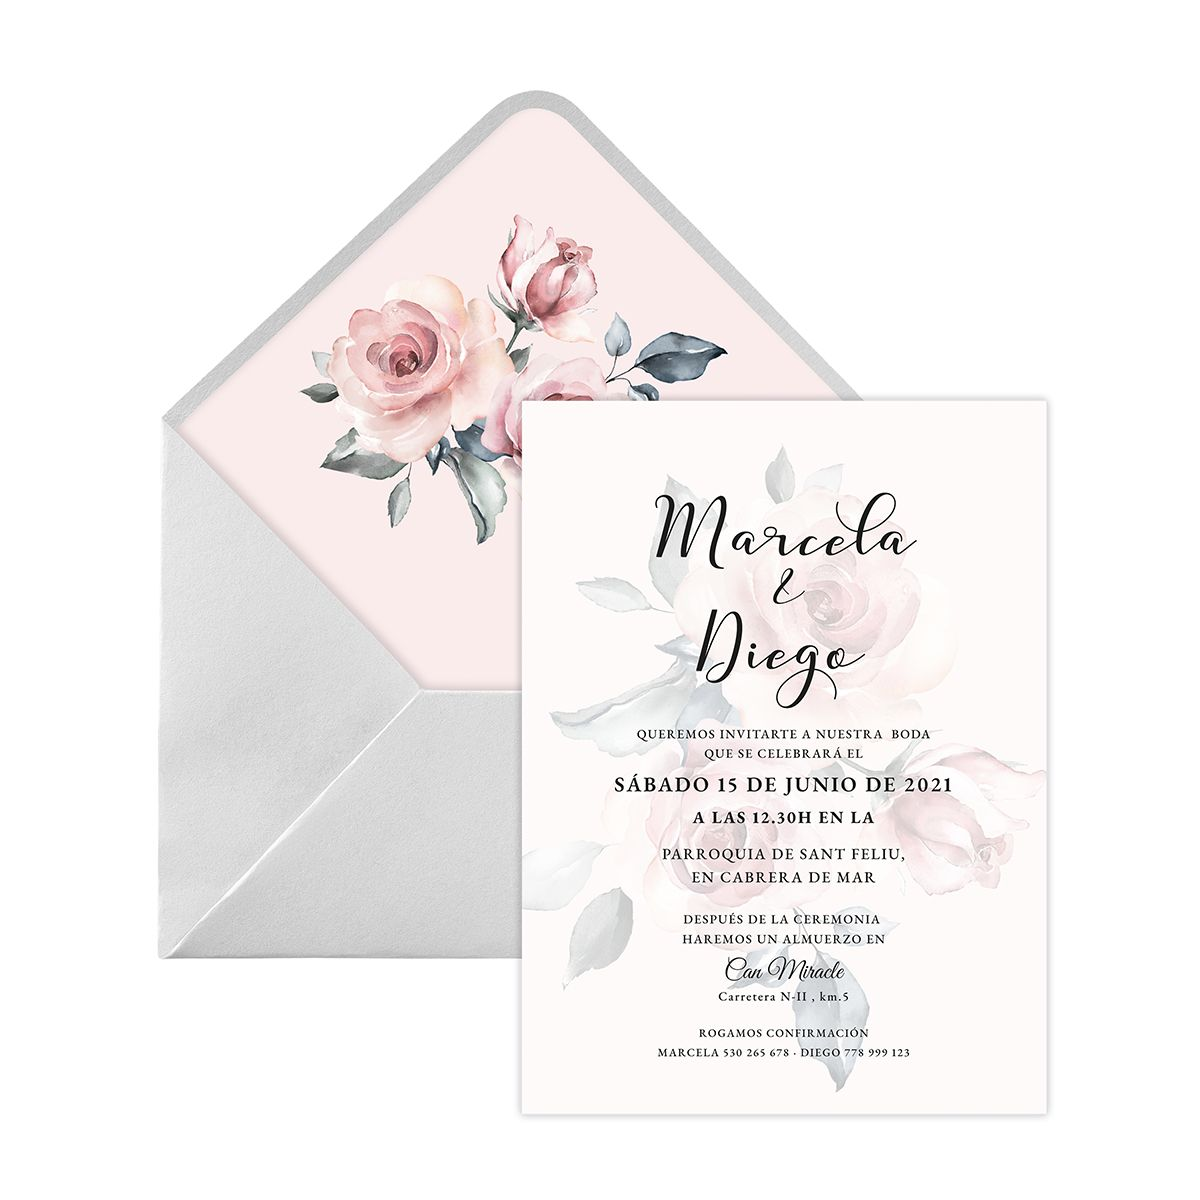 Invitación boda Noa Digital